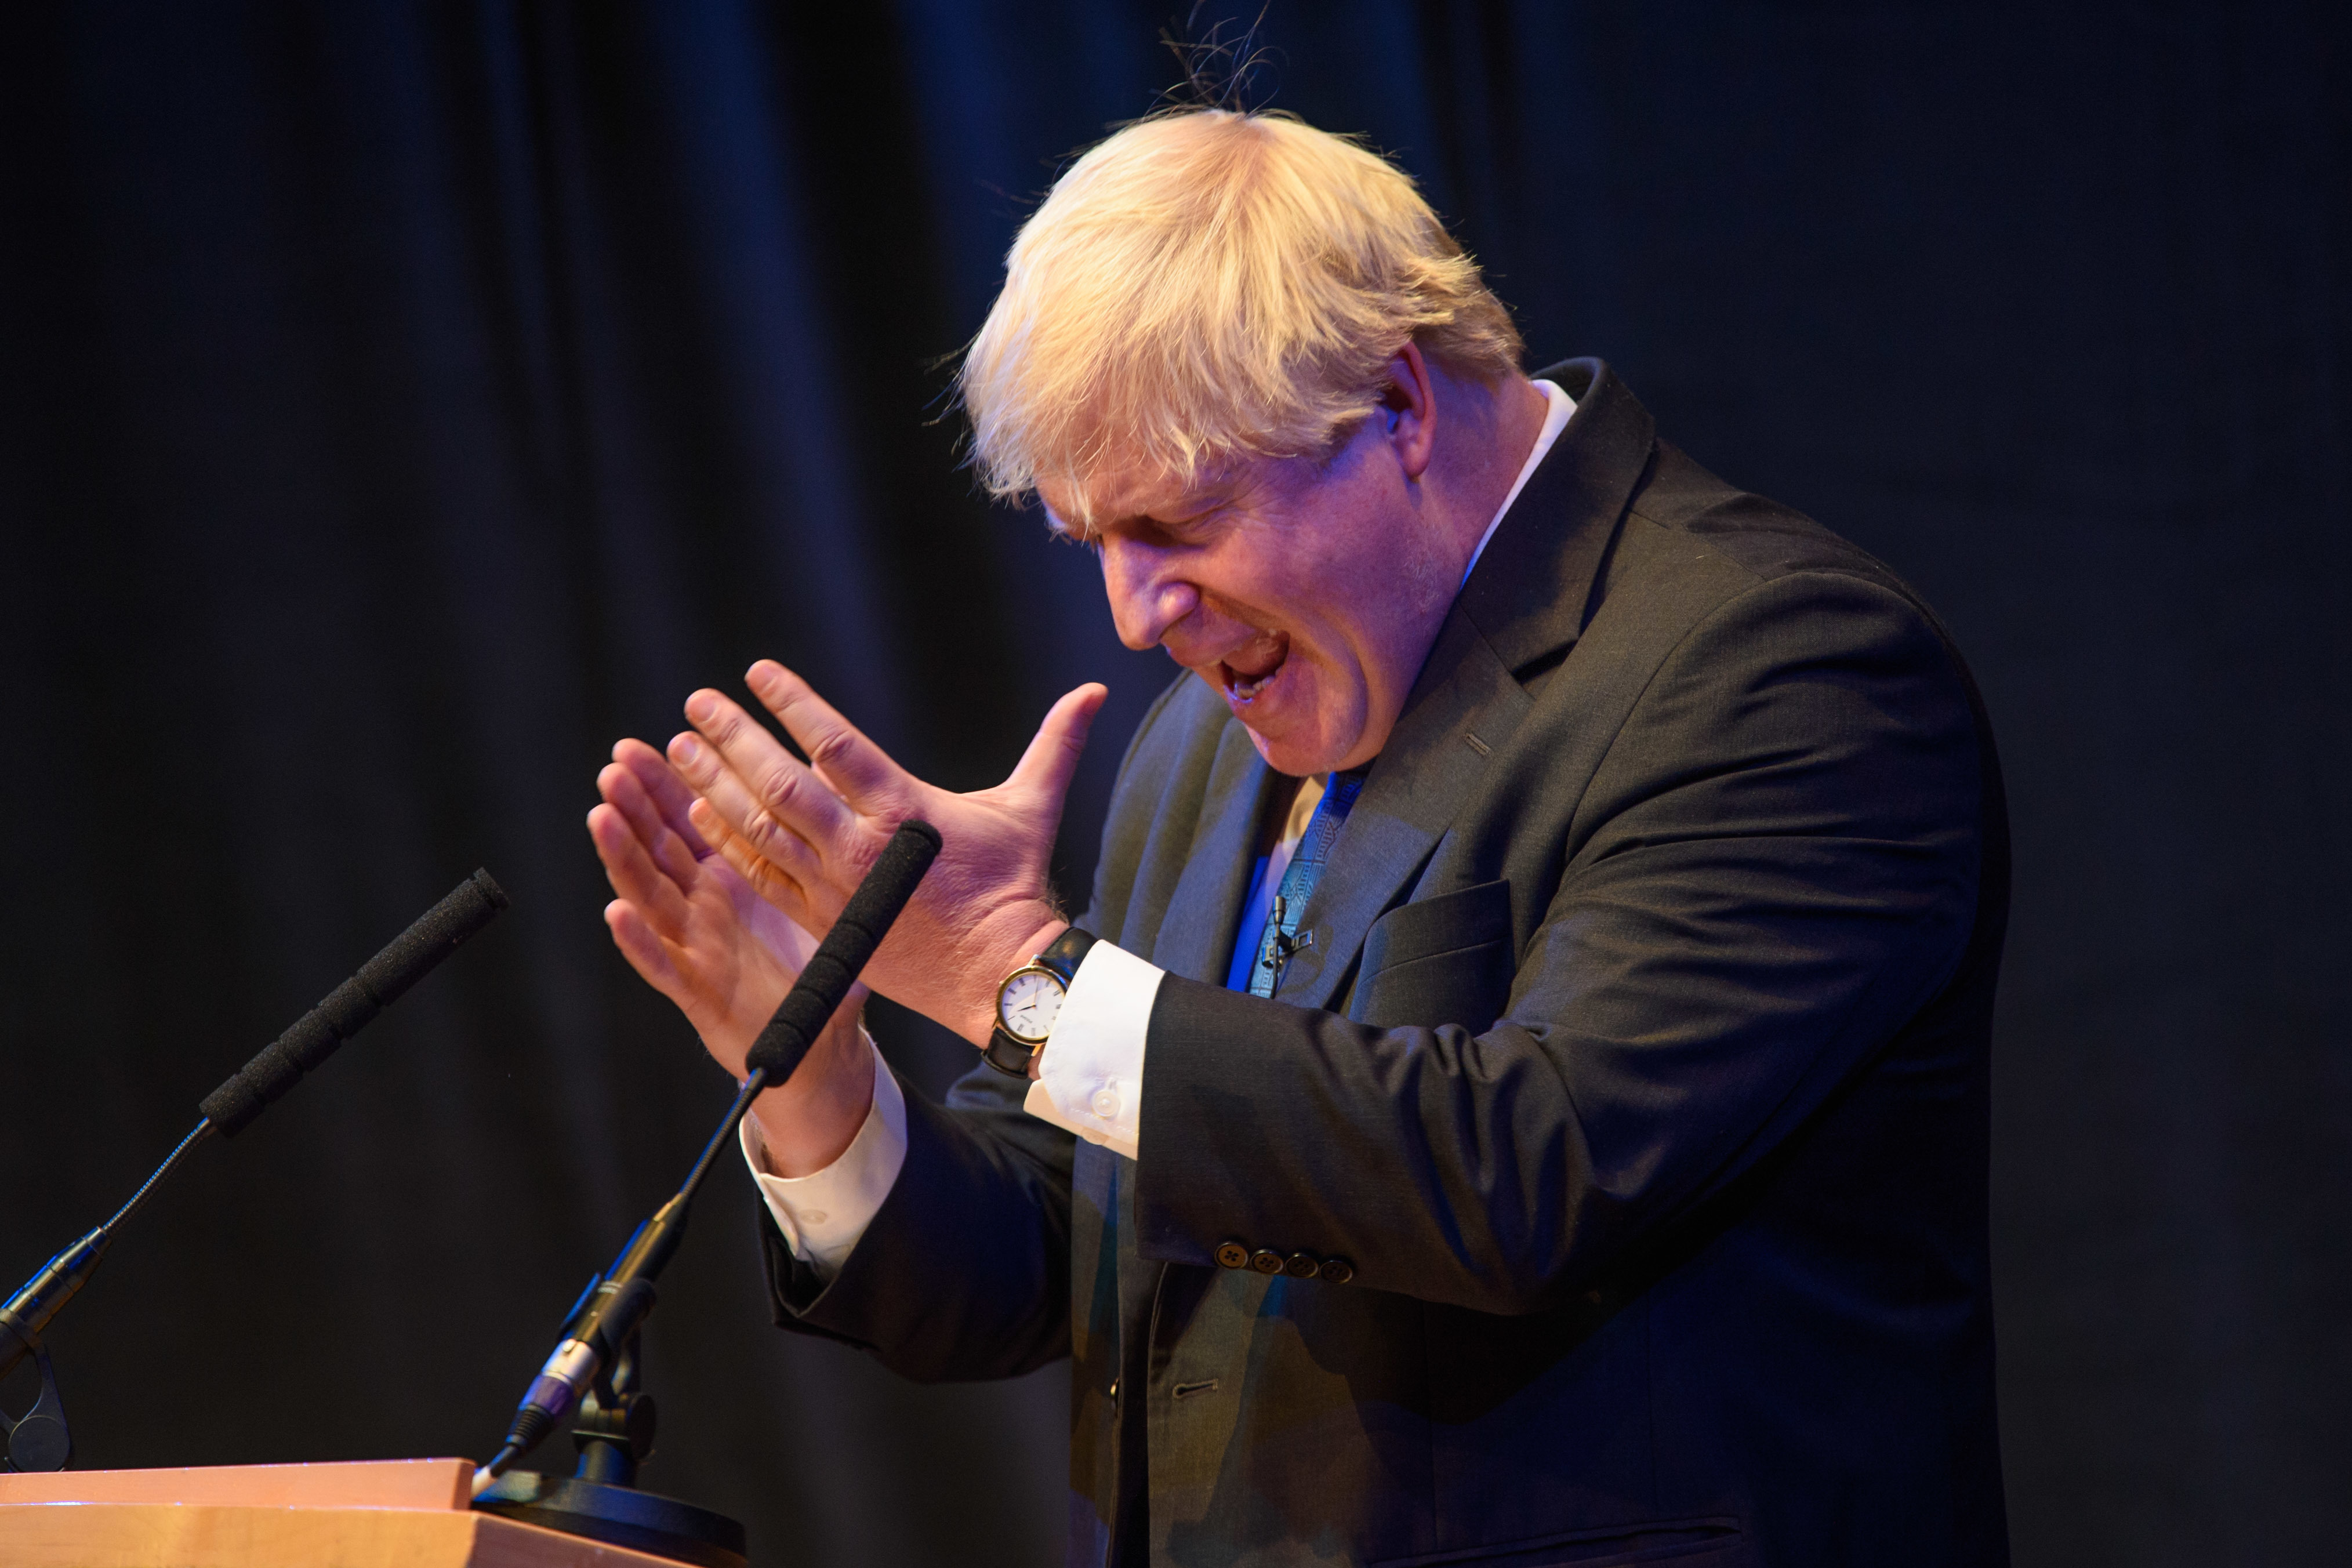 Boris Johnson MP speaks at a fringe event organised by Conservative Home during the Conservative Party annual conference, at the International Convention Centre, Birmingham. Picture date: Tuesday October 2nd, 2018. Photo credit should read: Matt Crossick/ EMPICS.